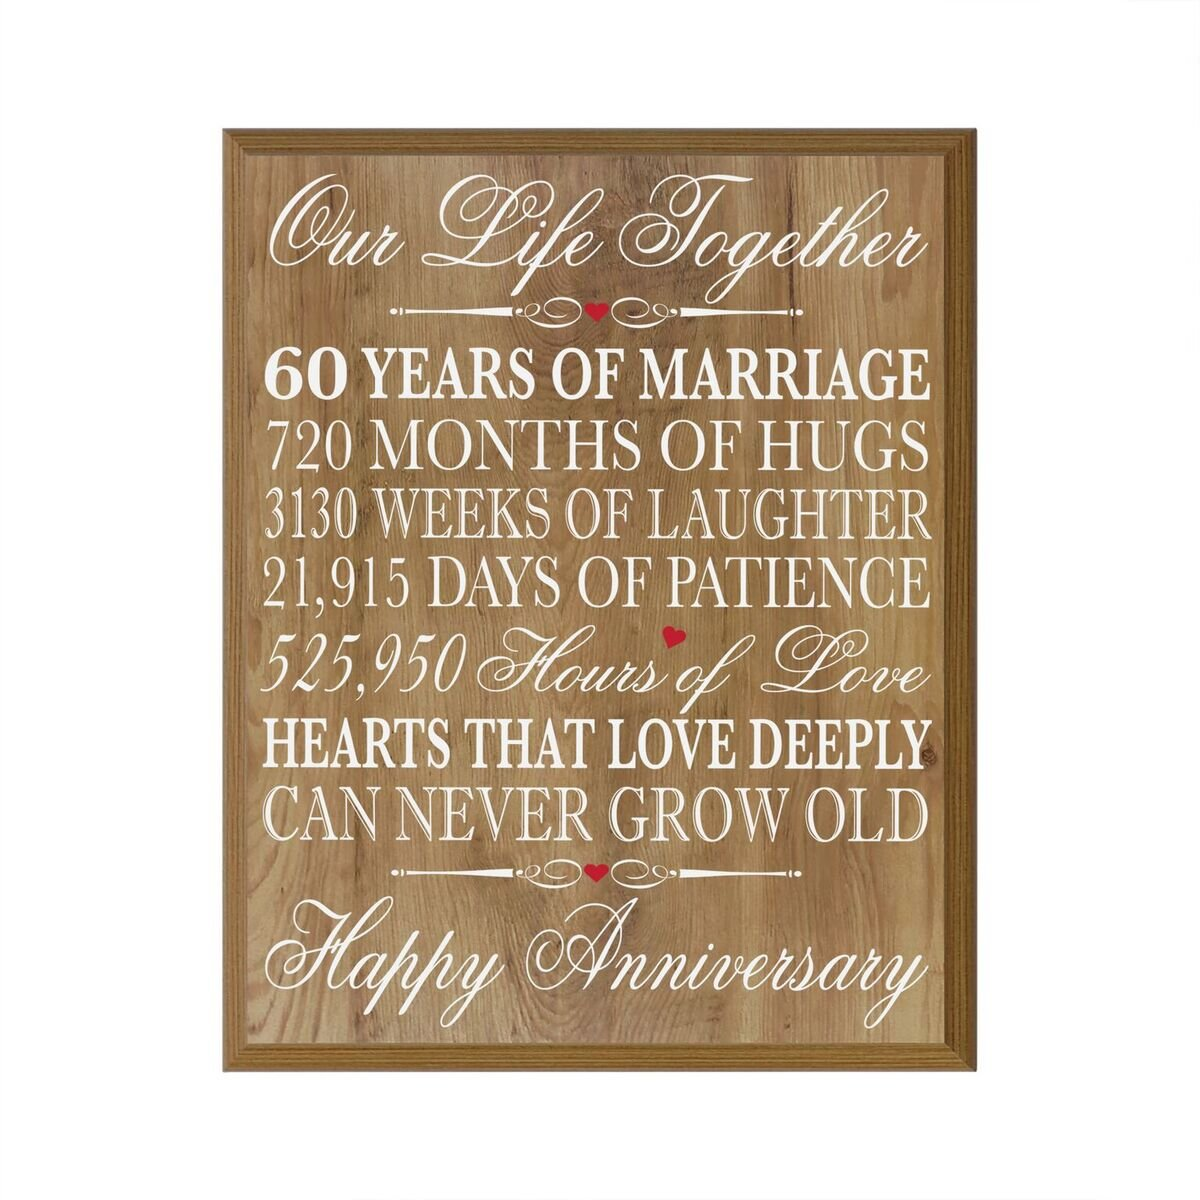 "60th Wedding Anniversary Wall Plaque Gifts for Couple, 60th Anniversary Gifts for Her,60th Wedding Anniversary Gifts for Him 12"" W X 15"" H Wall Plaque By ..."